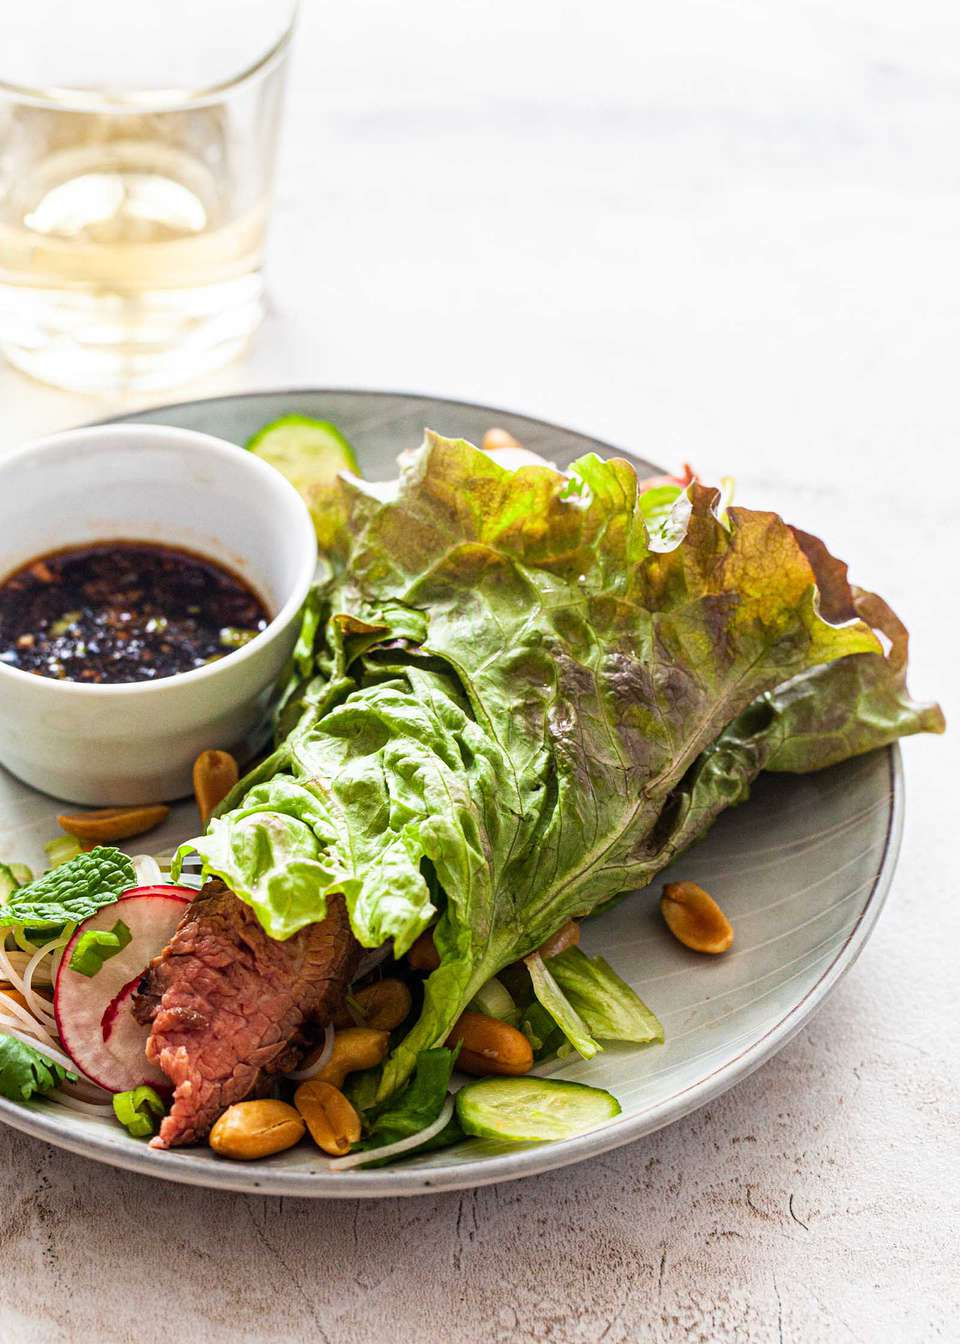 Asian steak lettuce wraps with sliced steak, cucumber, peanuts, radish and a dipping sauce.